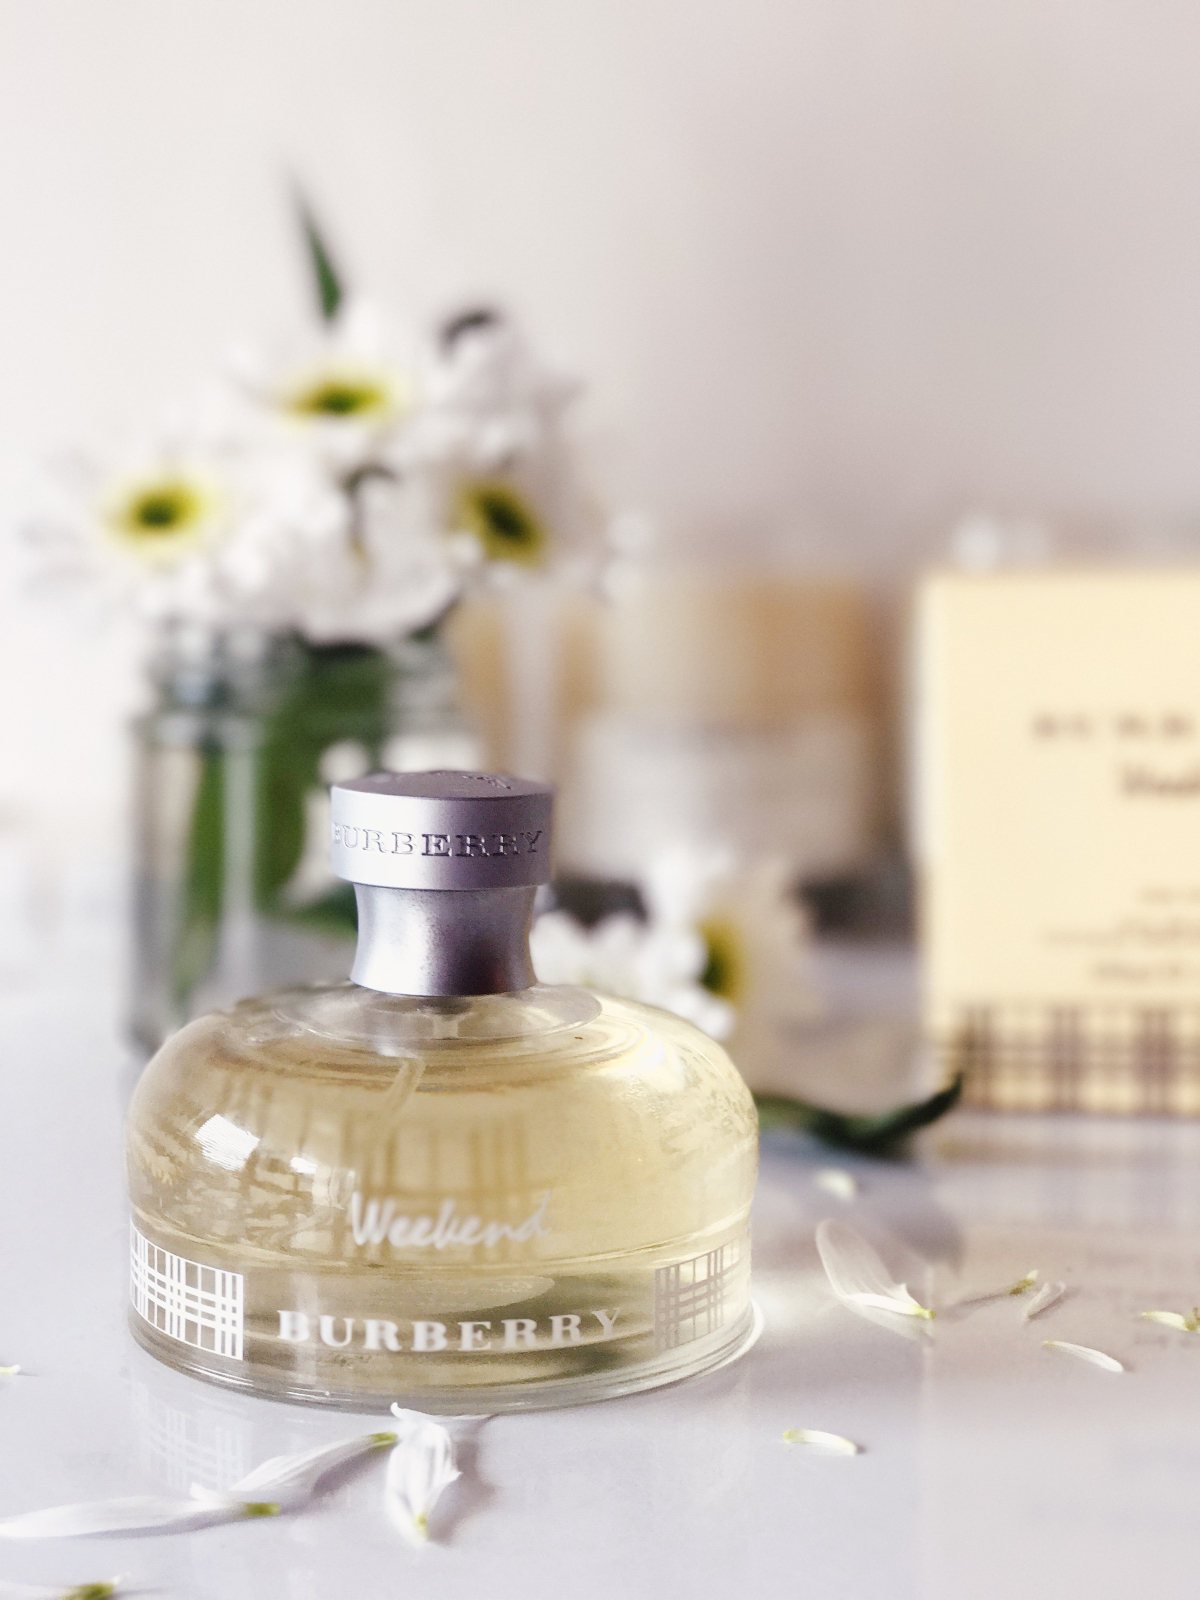 Burberry Weekend For Her Eau de Parfum